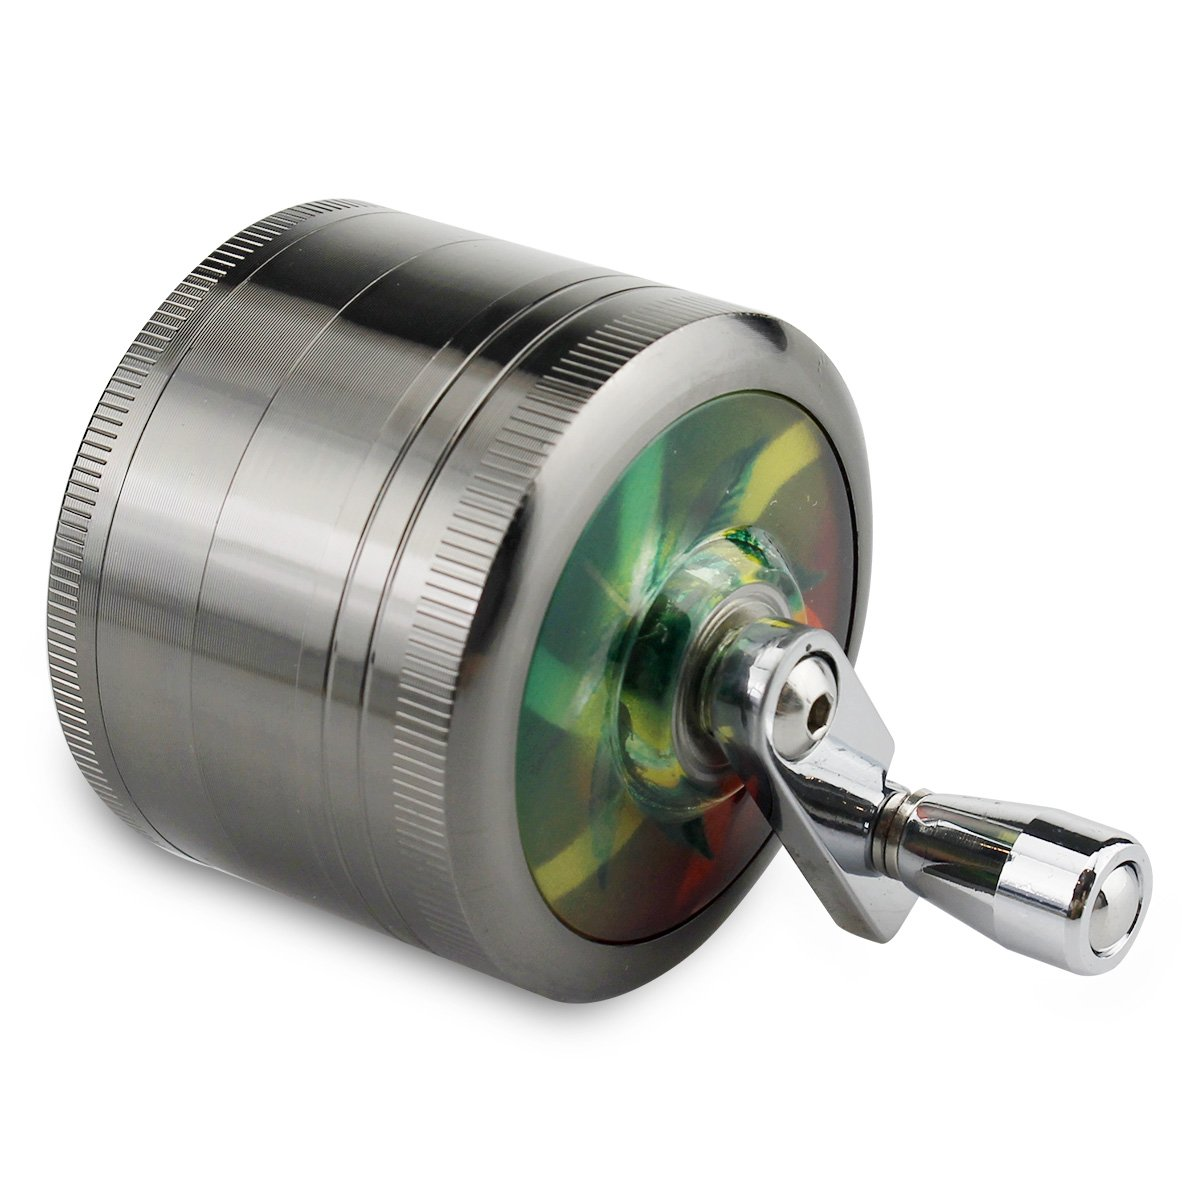 Formax®420 chromium metal, herb grinder, 50 mm with handle, crusher. Formax®420 chromium metal FORMAX420